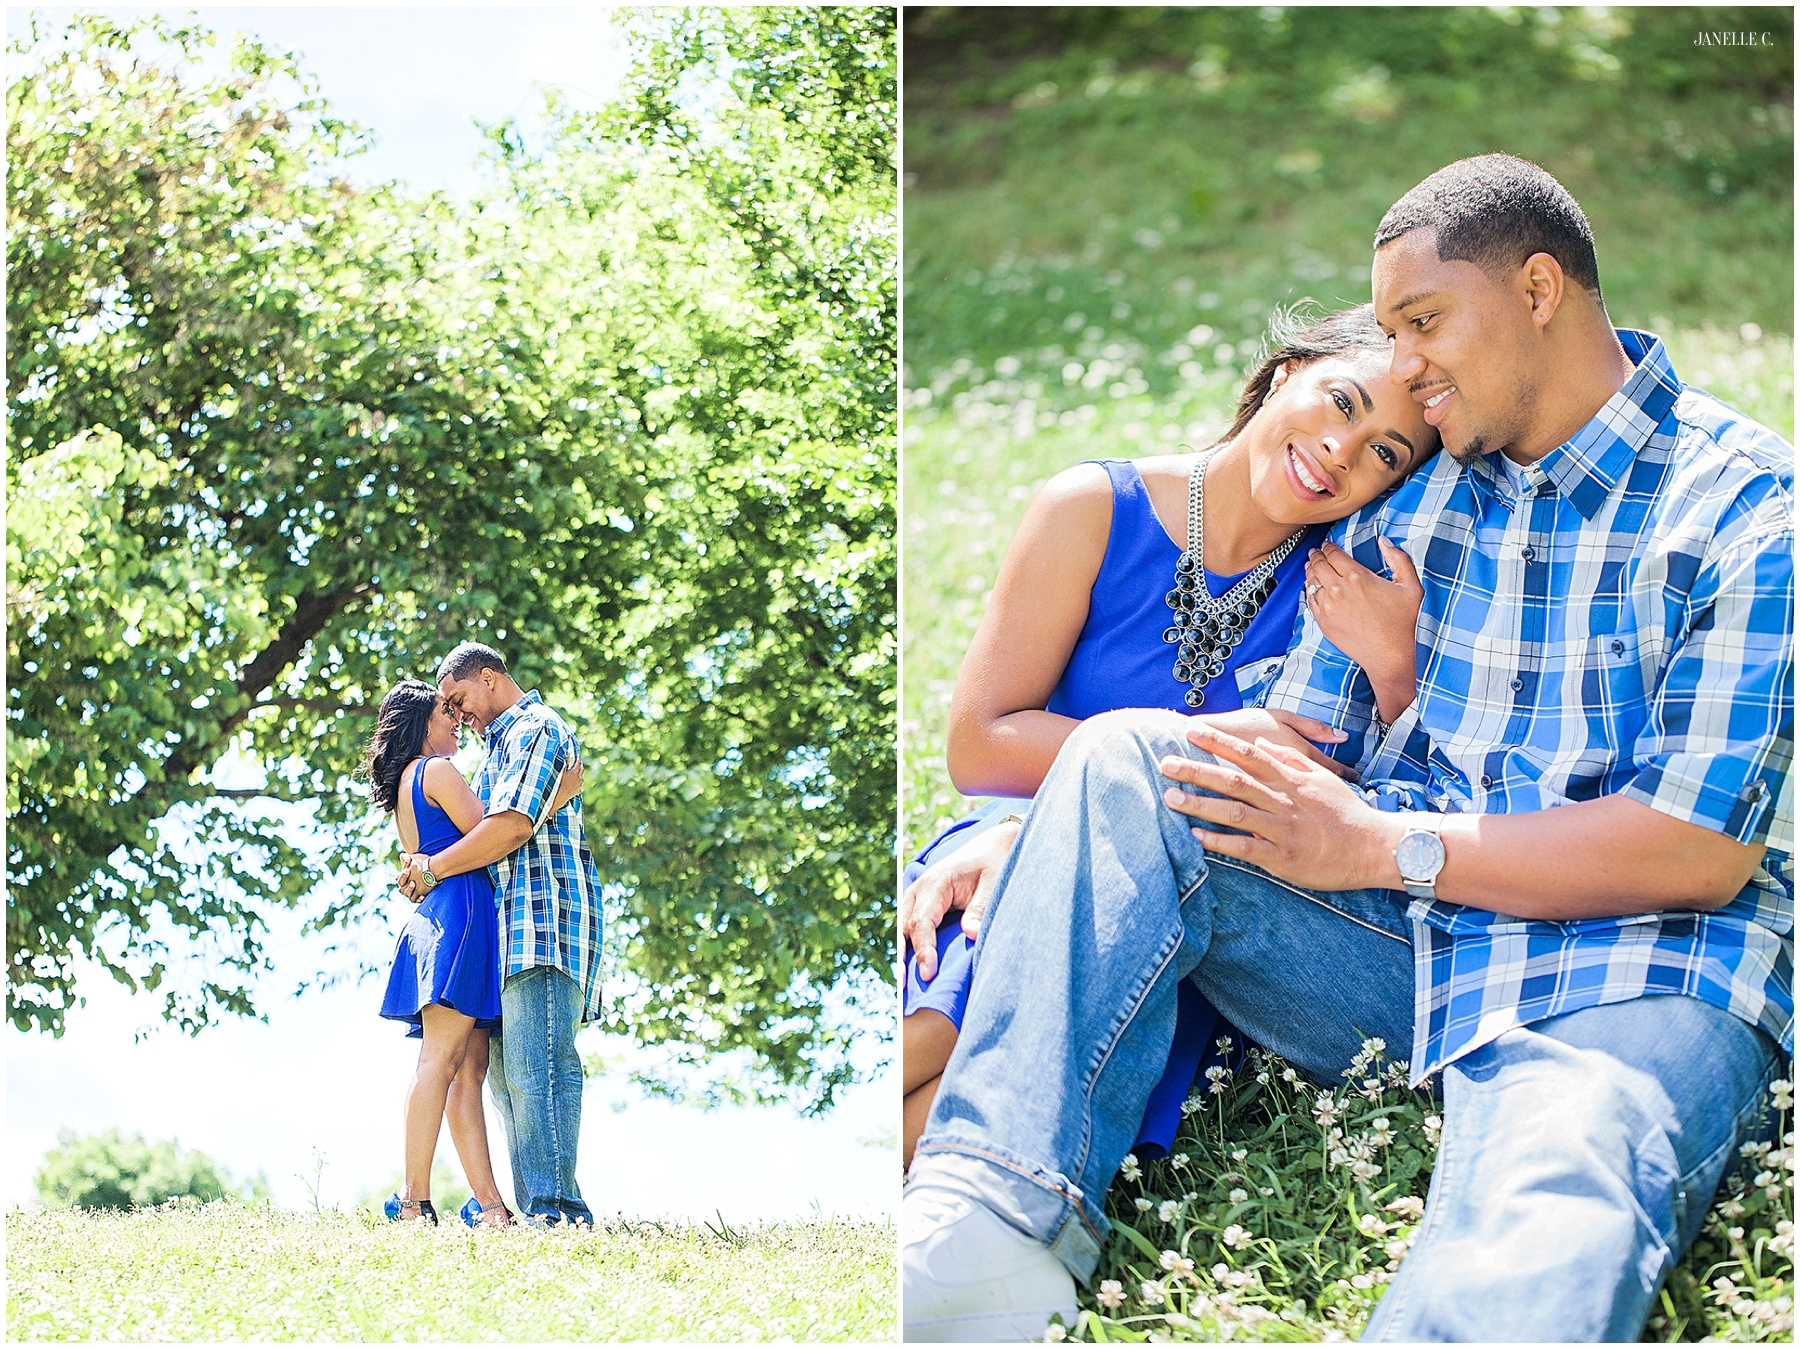 Atlanta Georgia Engagement Photographer - Janelle C. Photography - Piedmont Park_020